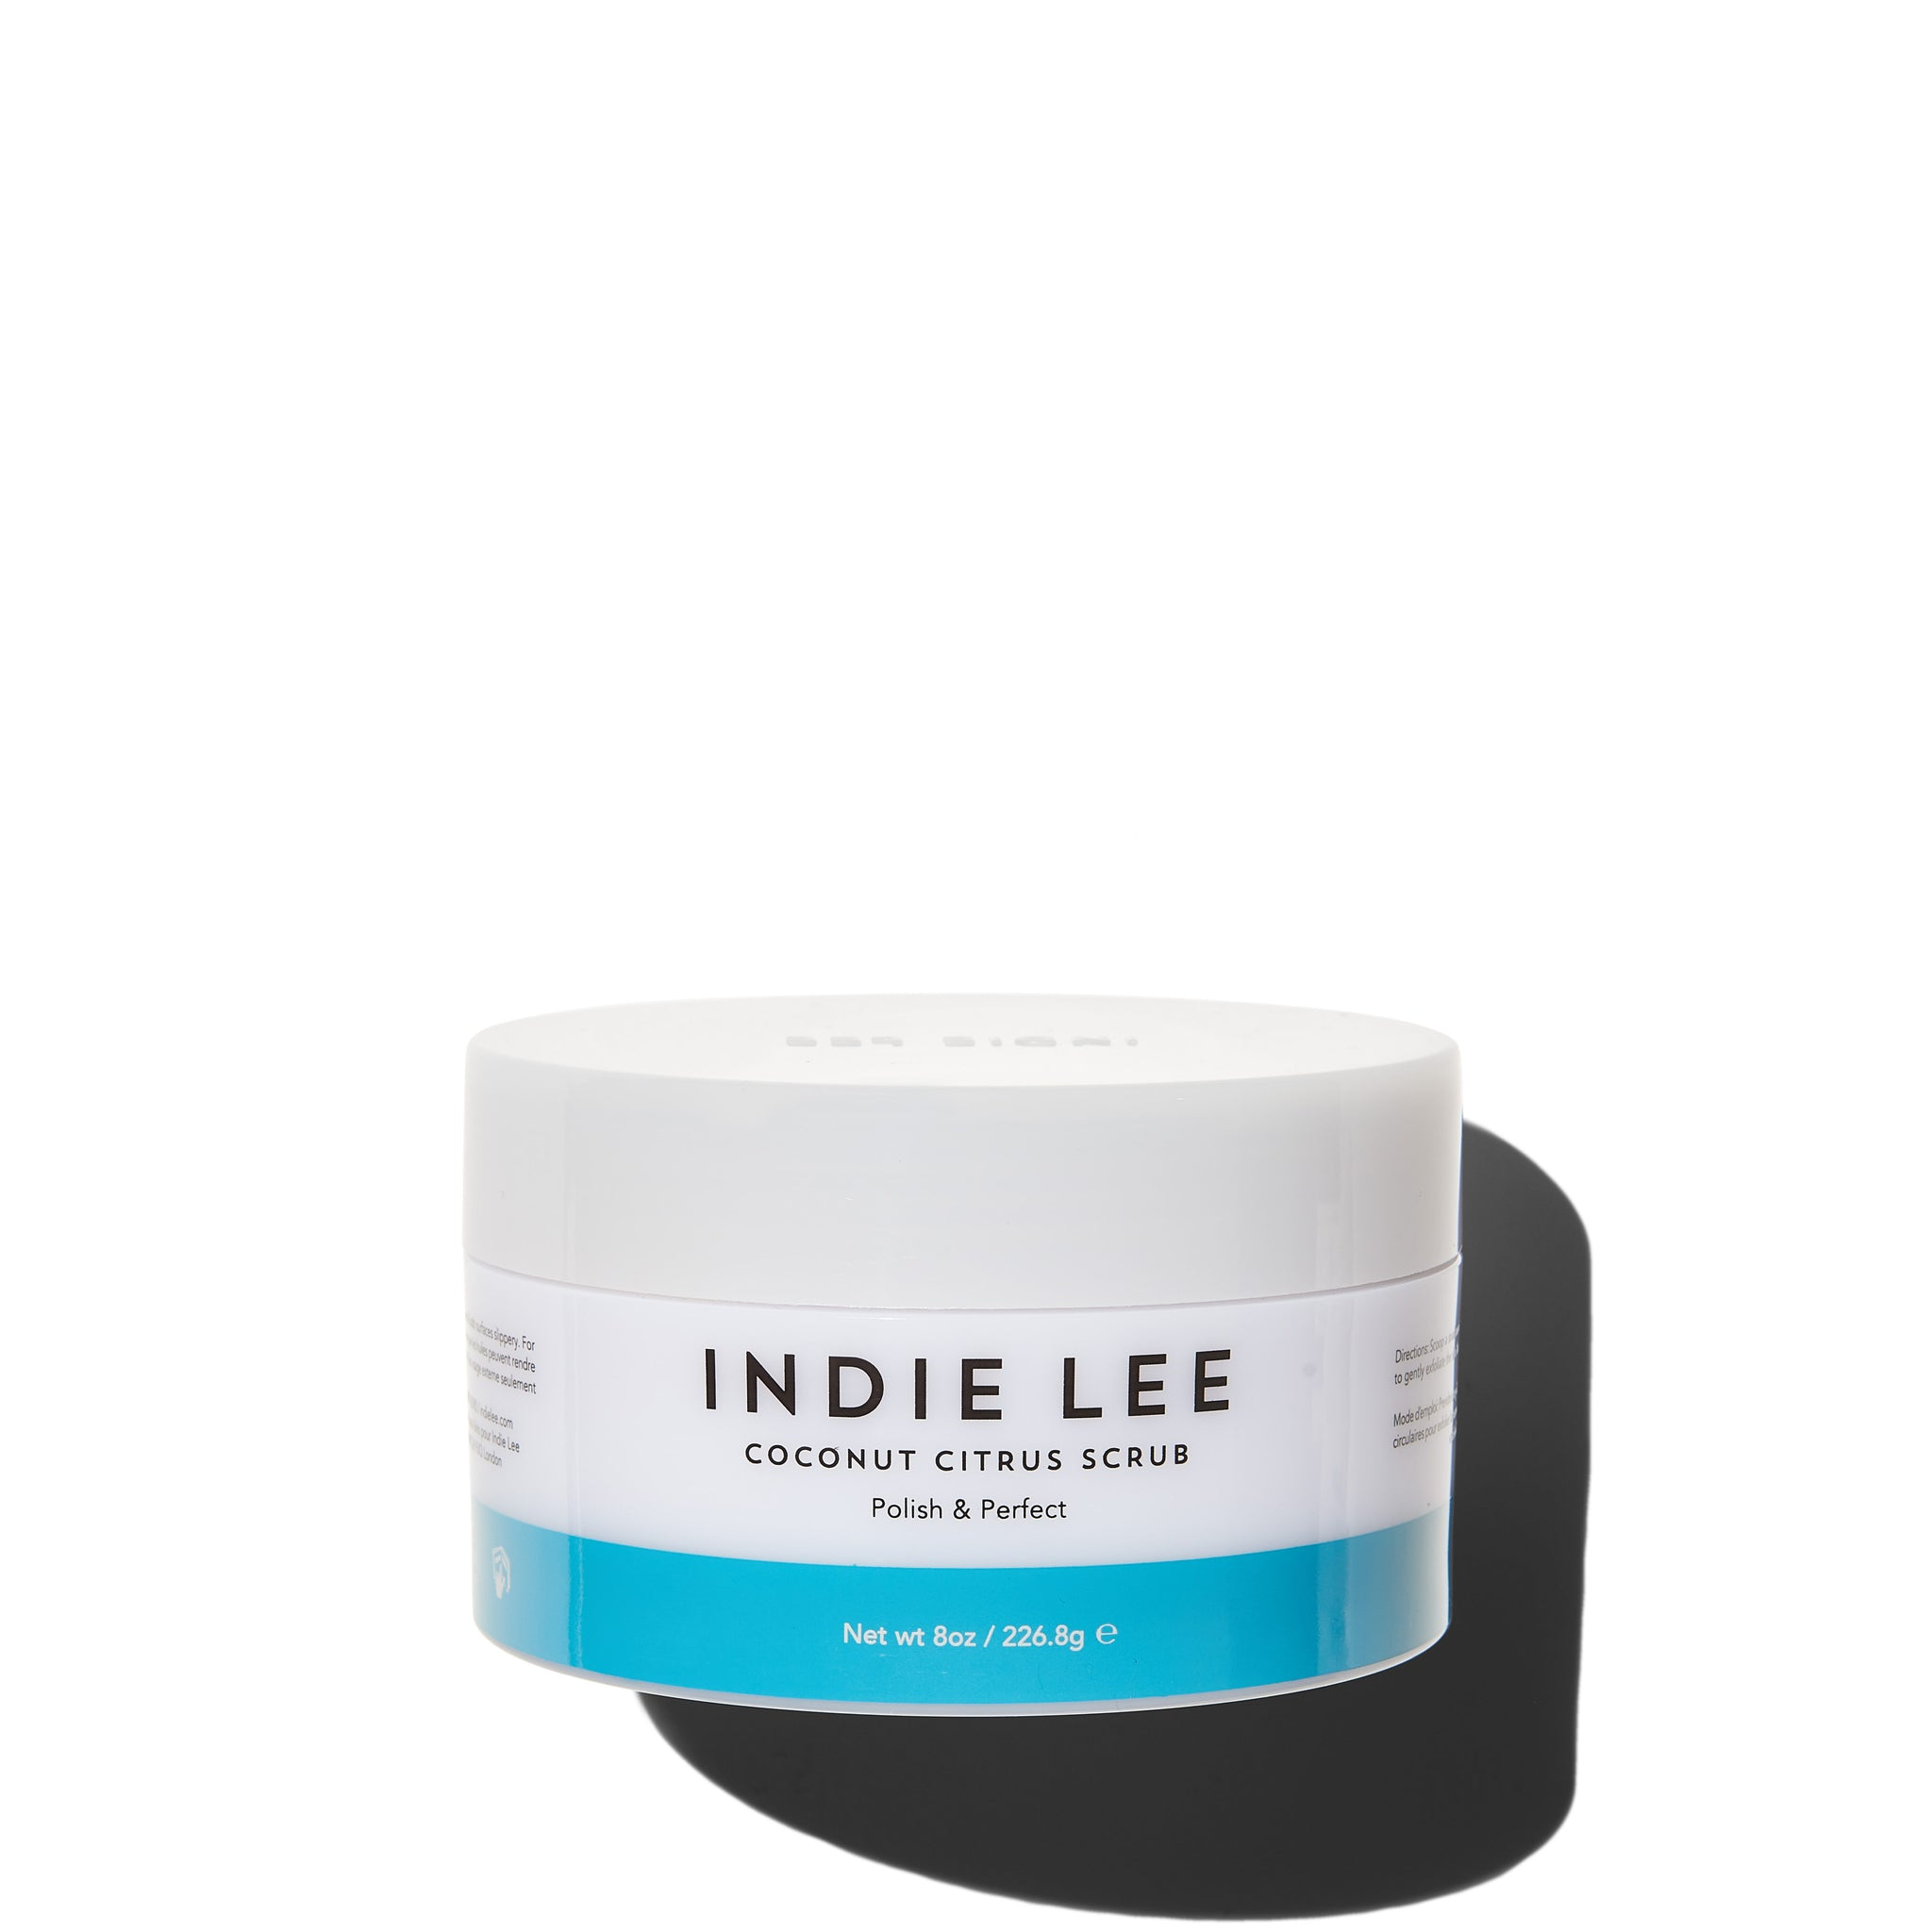 Indie Lee coconut citrus scrub - plp